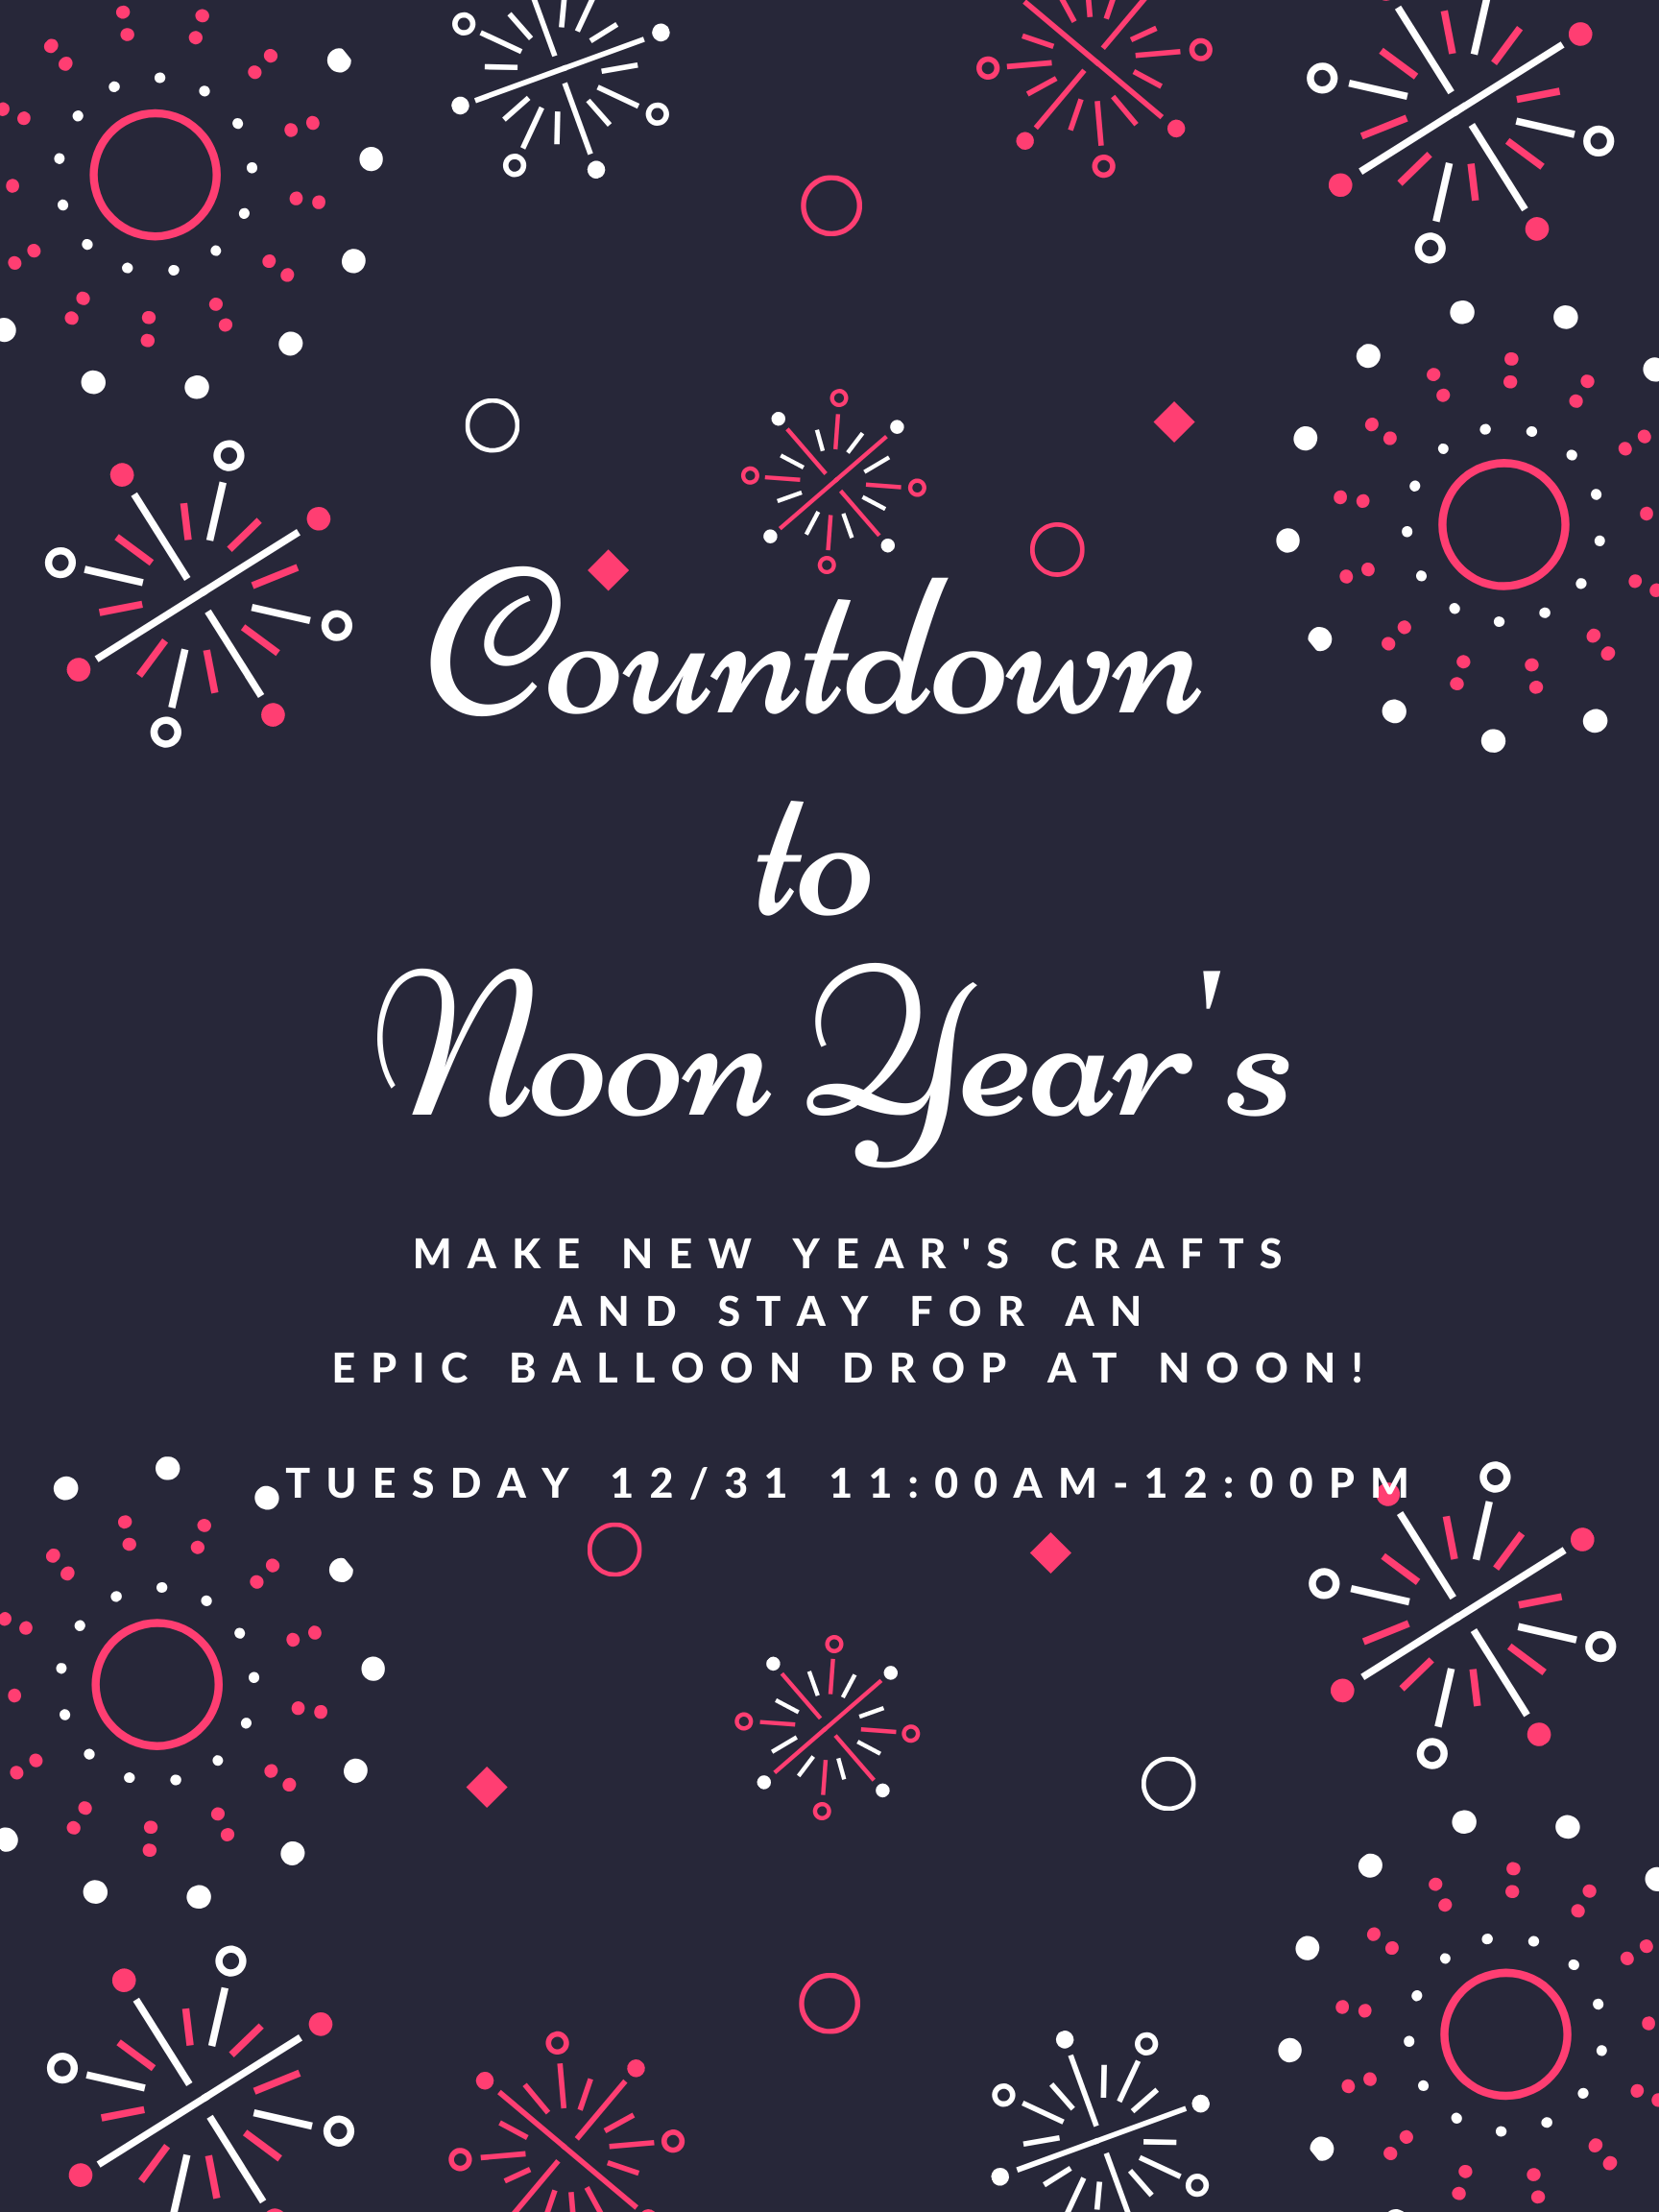 Countdown to Noon Year's Eve!